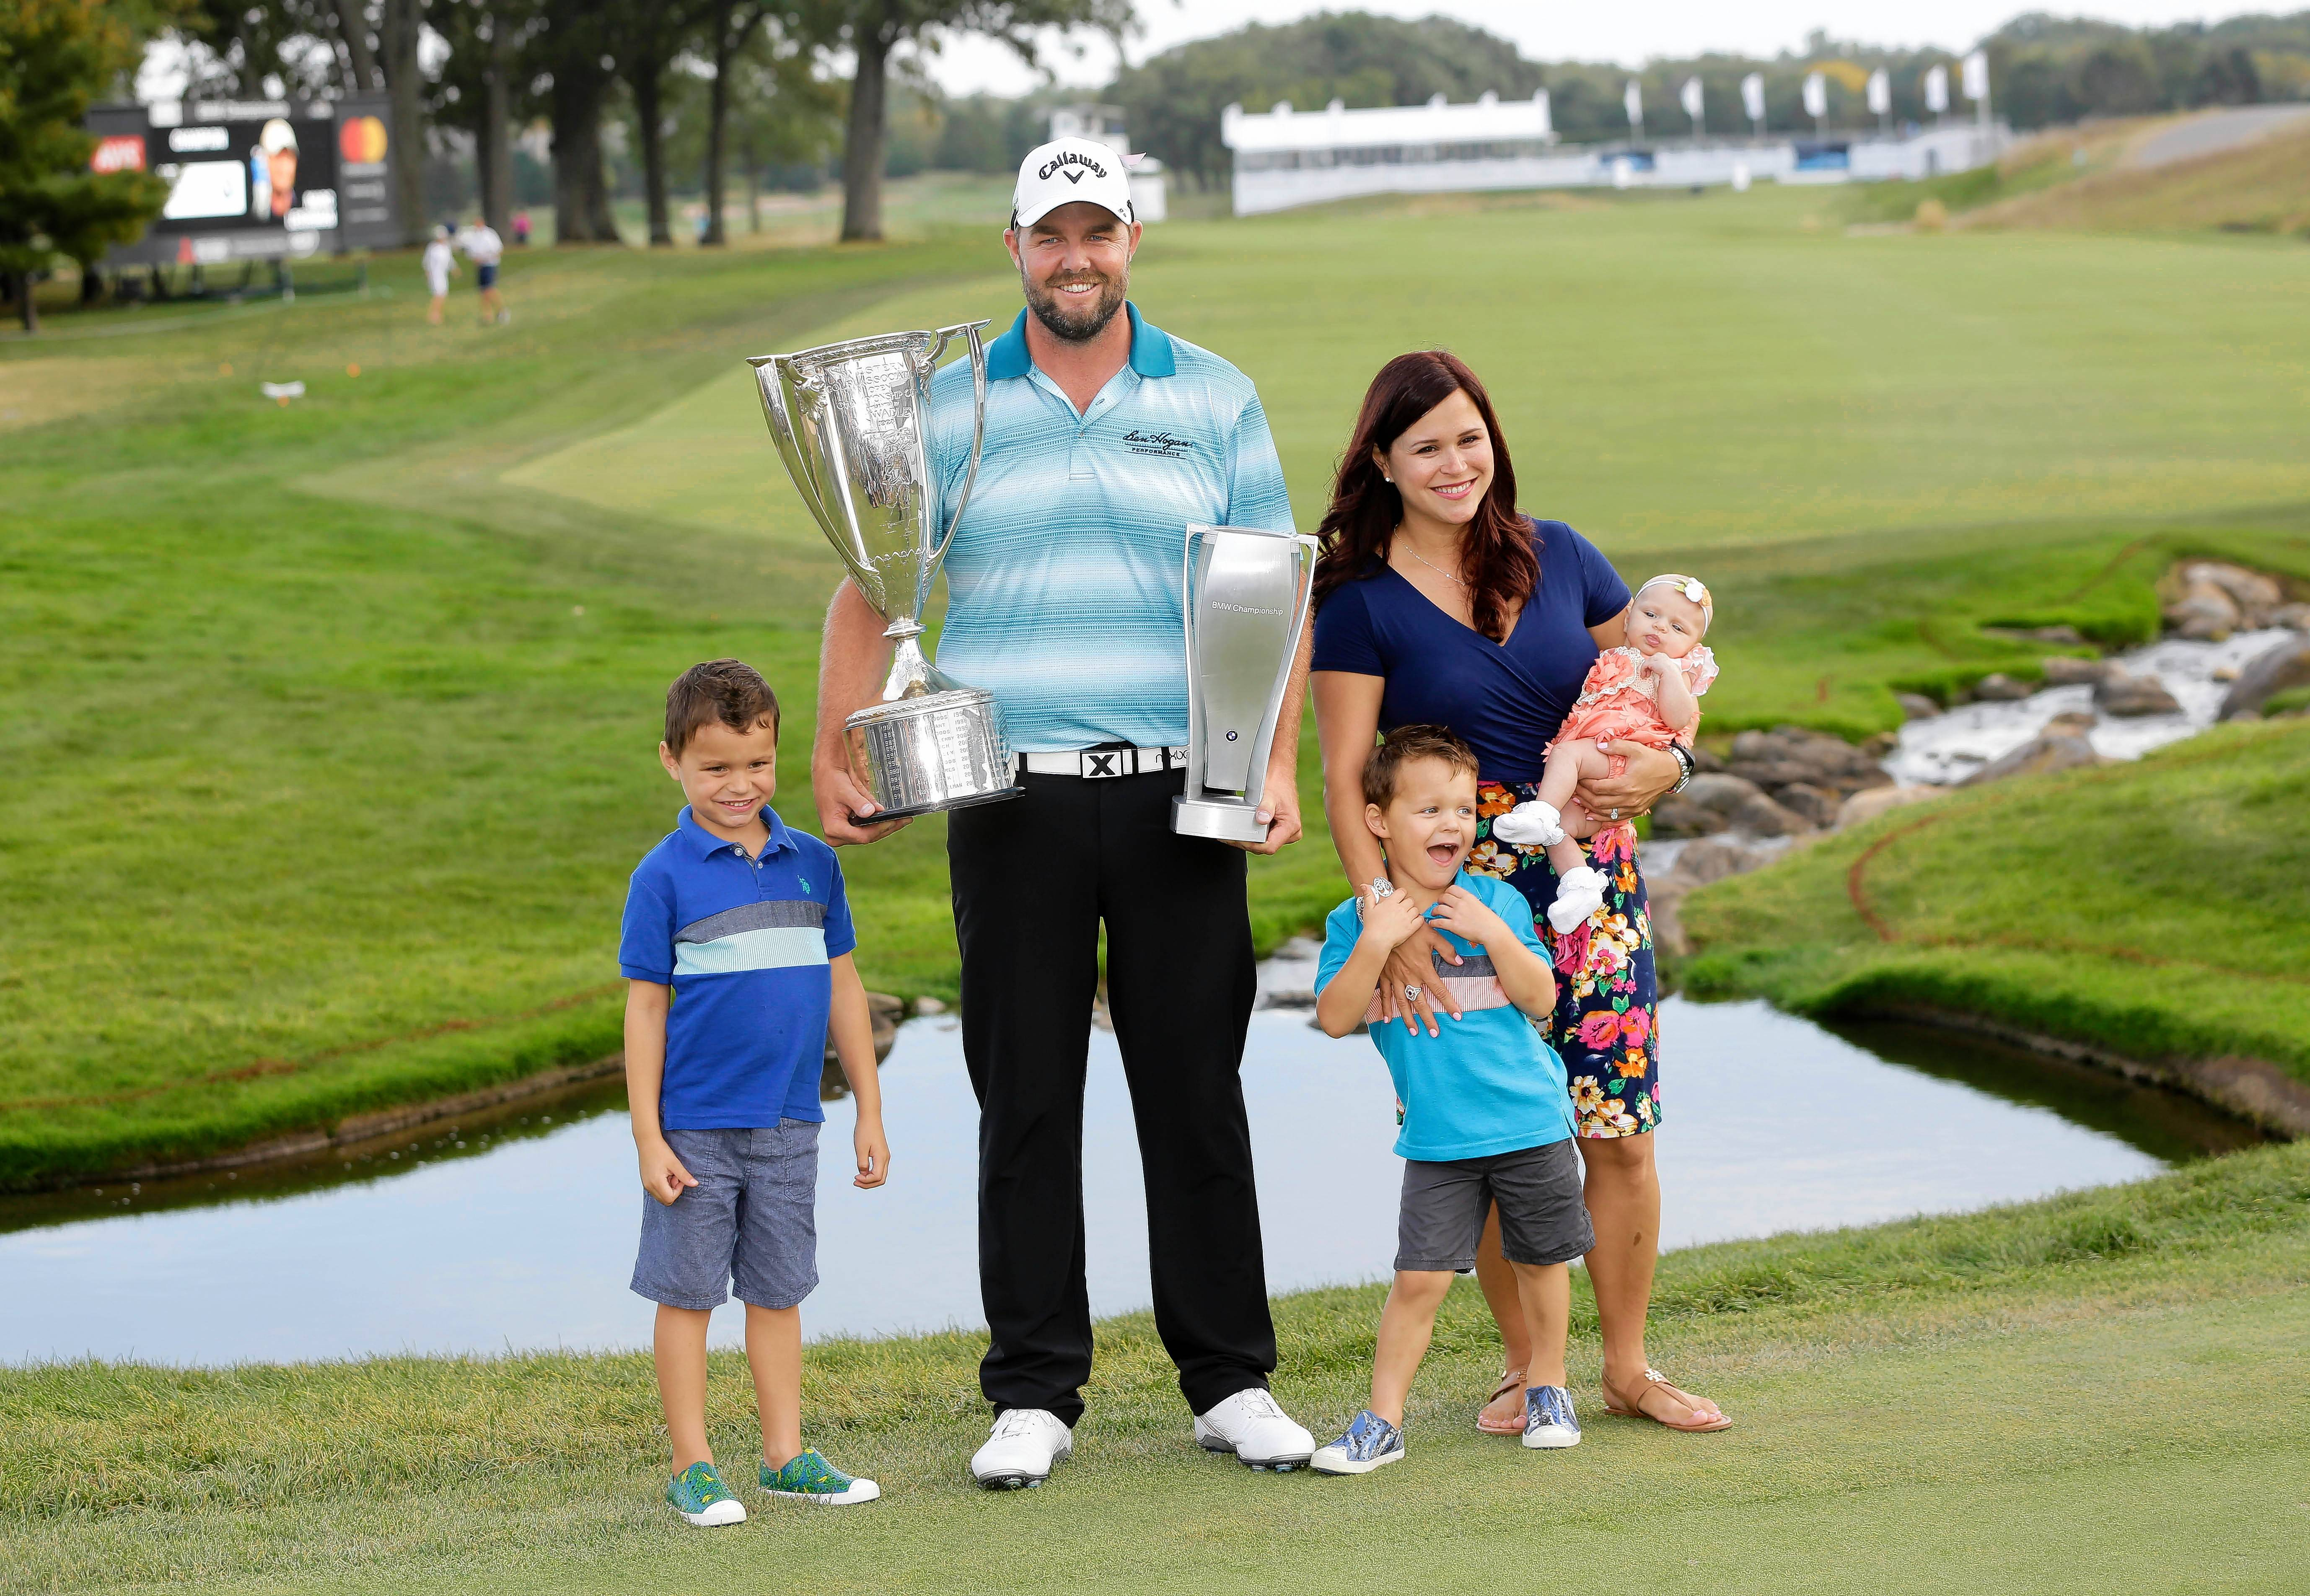 Marc Leishman, center, smiles as he poses with the Wadley Cup, left, the BMW Championship trophy and his family from left, son Harvey, son Oliver, wife Audrey and daughter Eva after winning the BMW Championship golf tournament at Conway Farms Golf Club, Sunday, Sept. 17, 2017, in Lake Forest, Ill. (AP Photo/Charles Rex Arbogast)